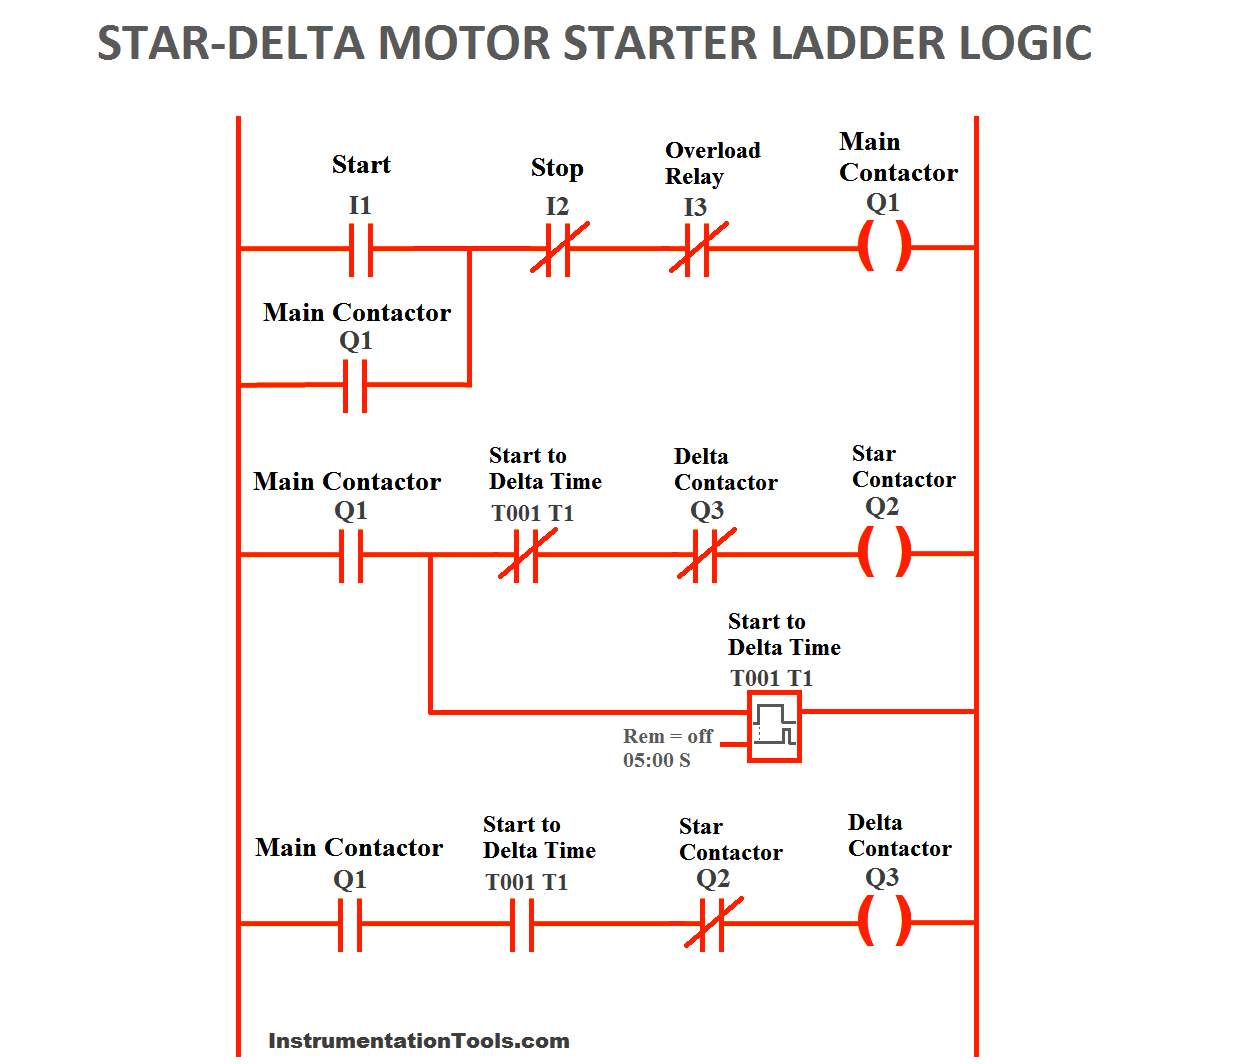 Plc Program For Star Delta Motor Starter Plc Motor Ladder Logics